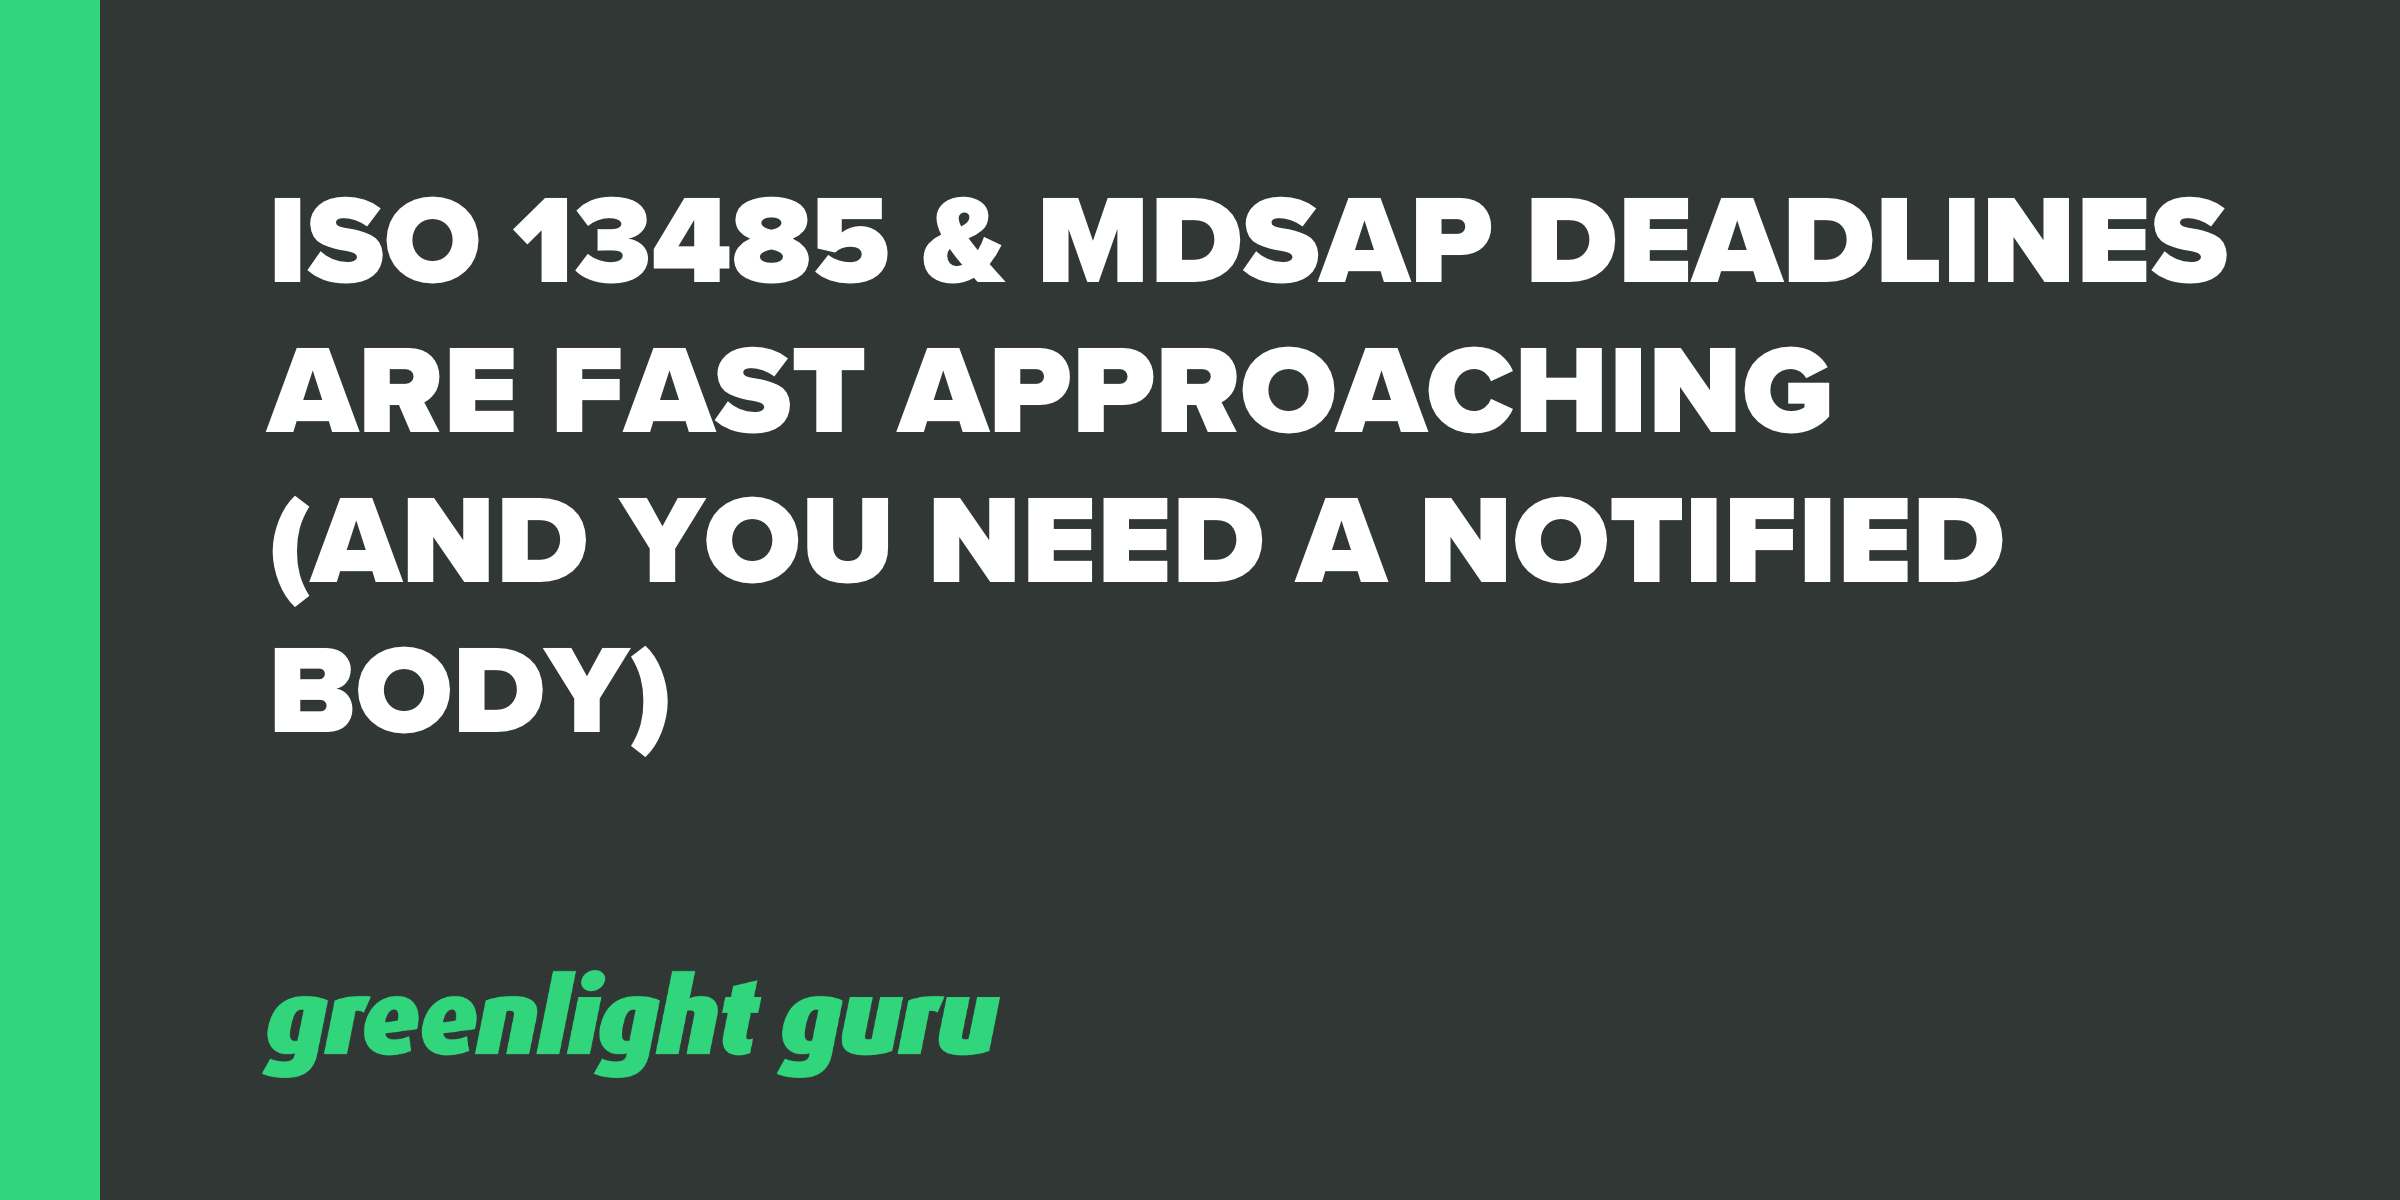 ISO 13485 & MDSAP Deadlines are Fast Approaching (And You Need a Notified Body) - Featured Image